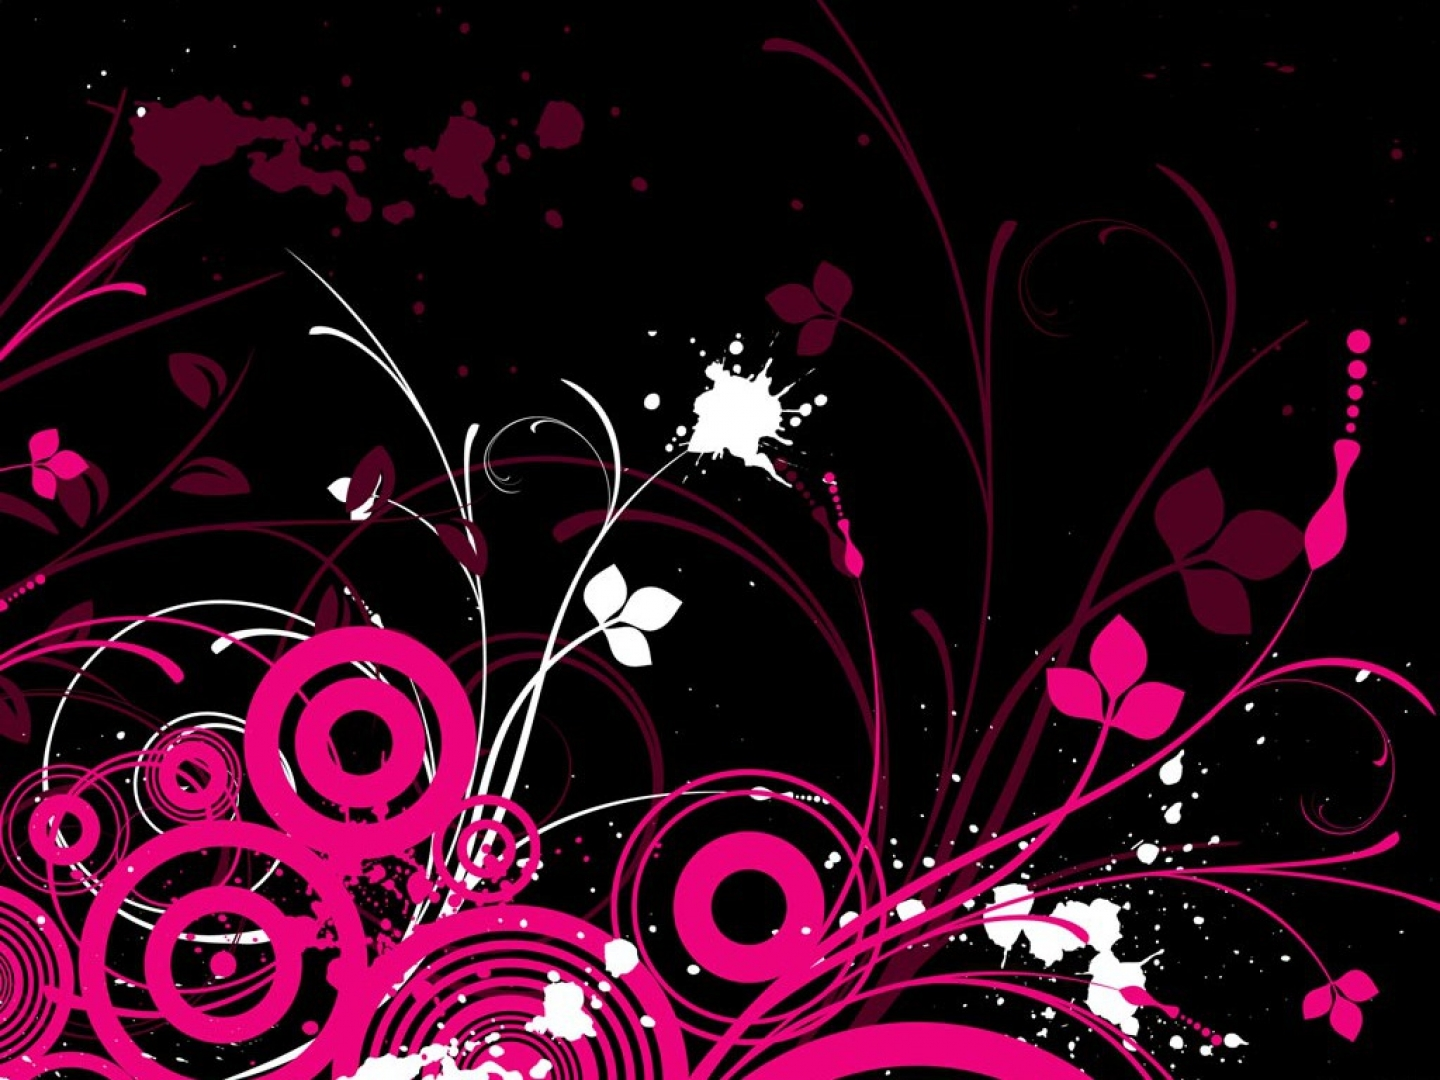 Cute Black and Pink Wallpaper - WallpaperSafari